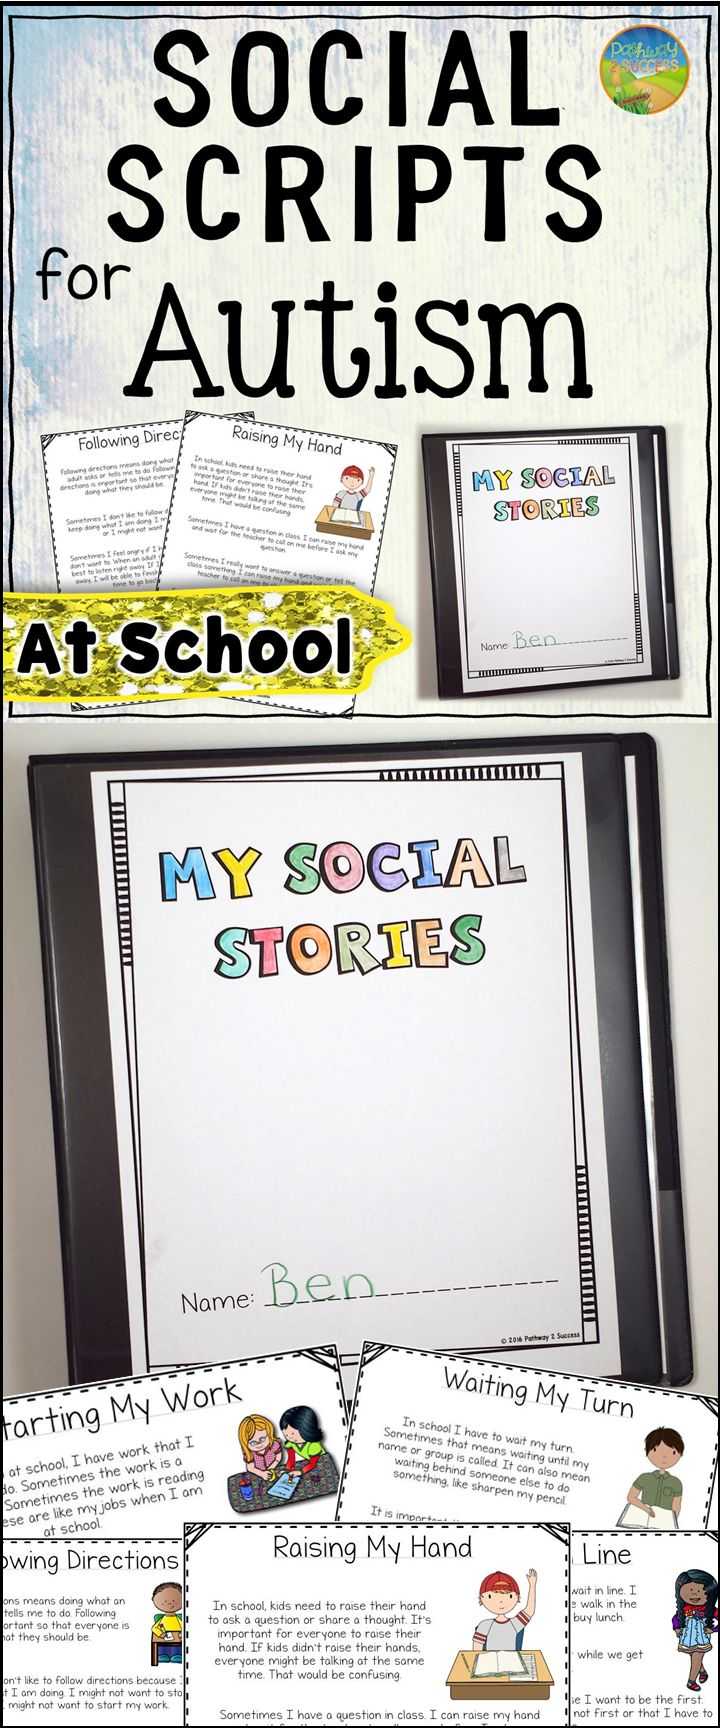 Social scripts for autism - teaching about school skills